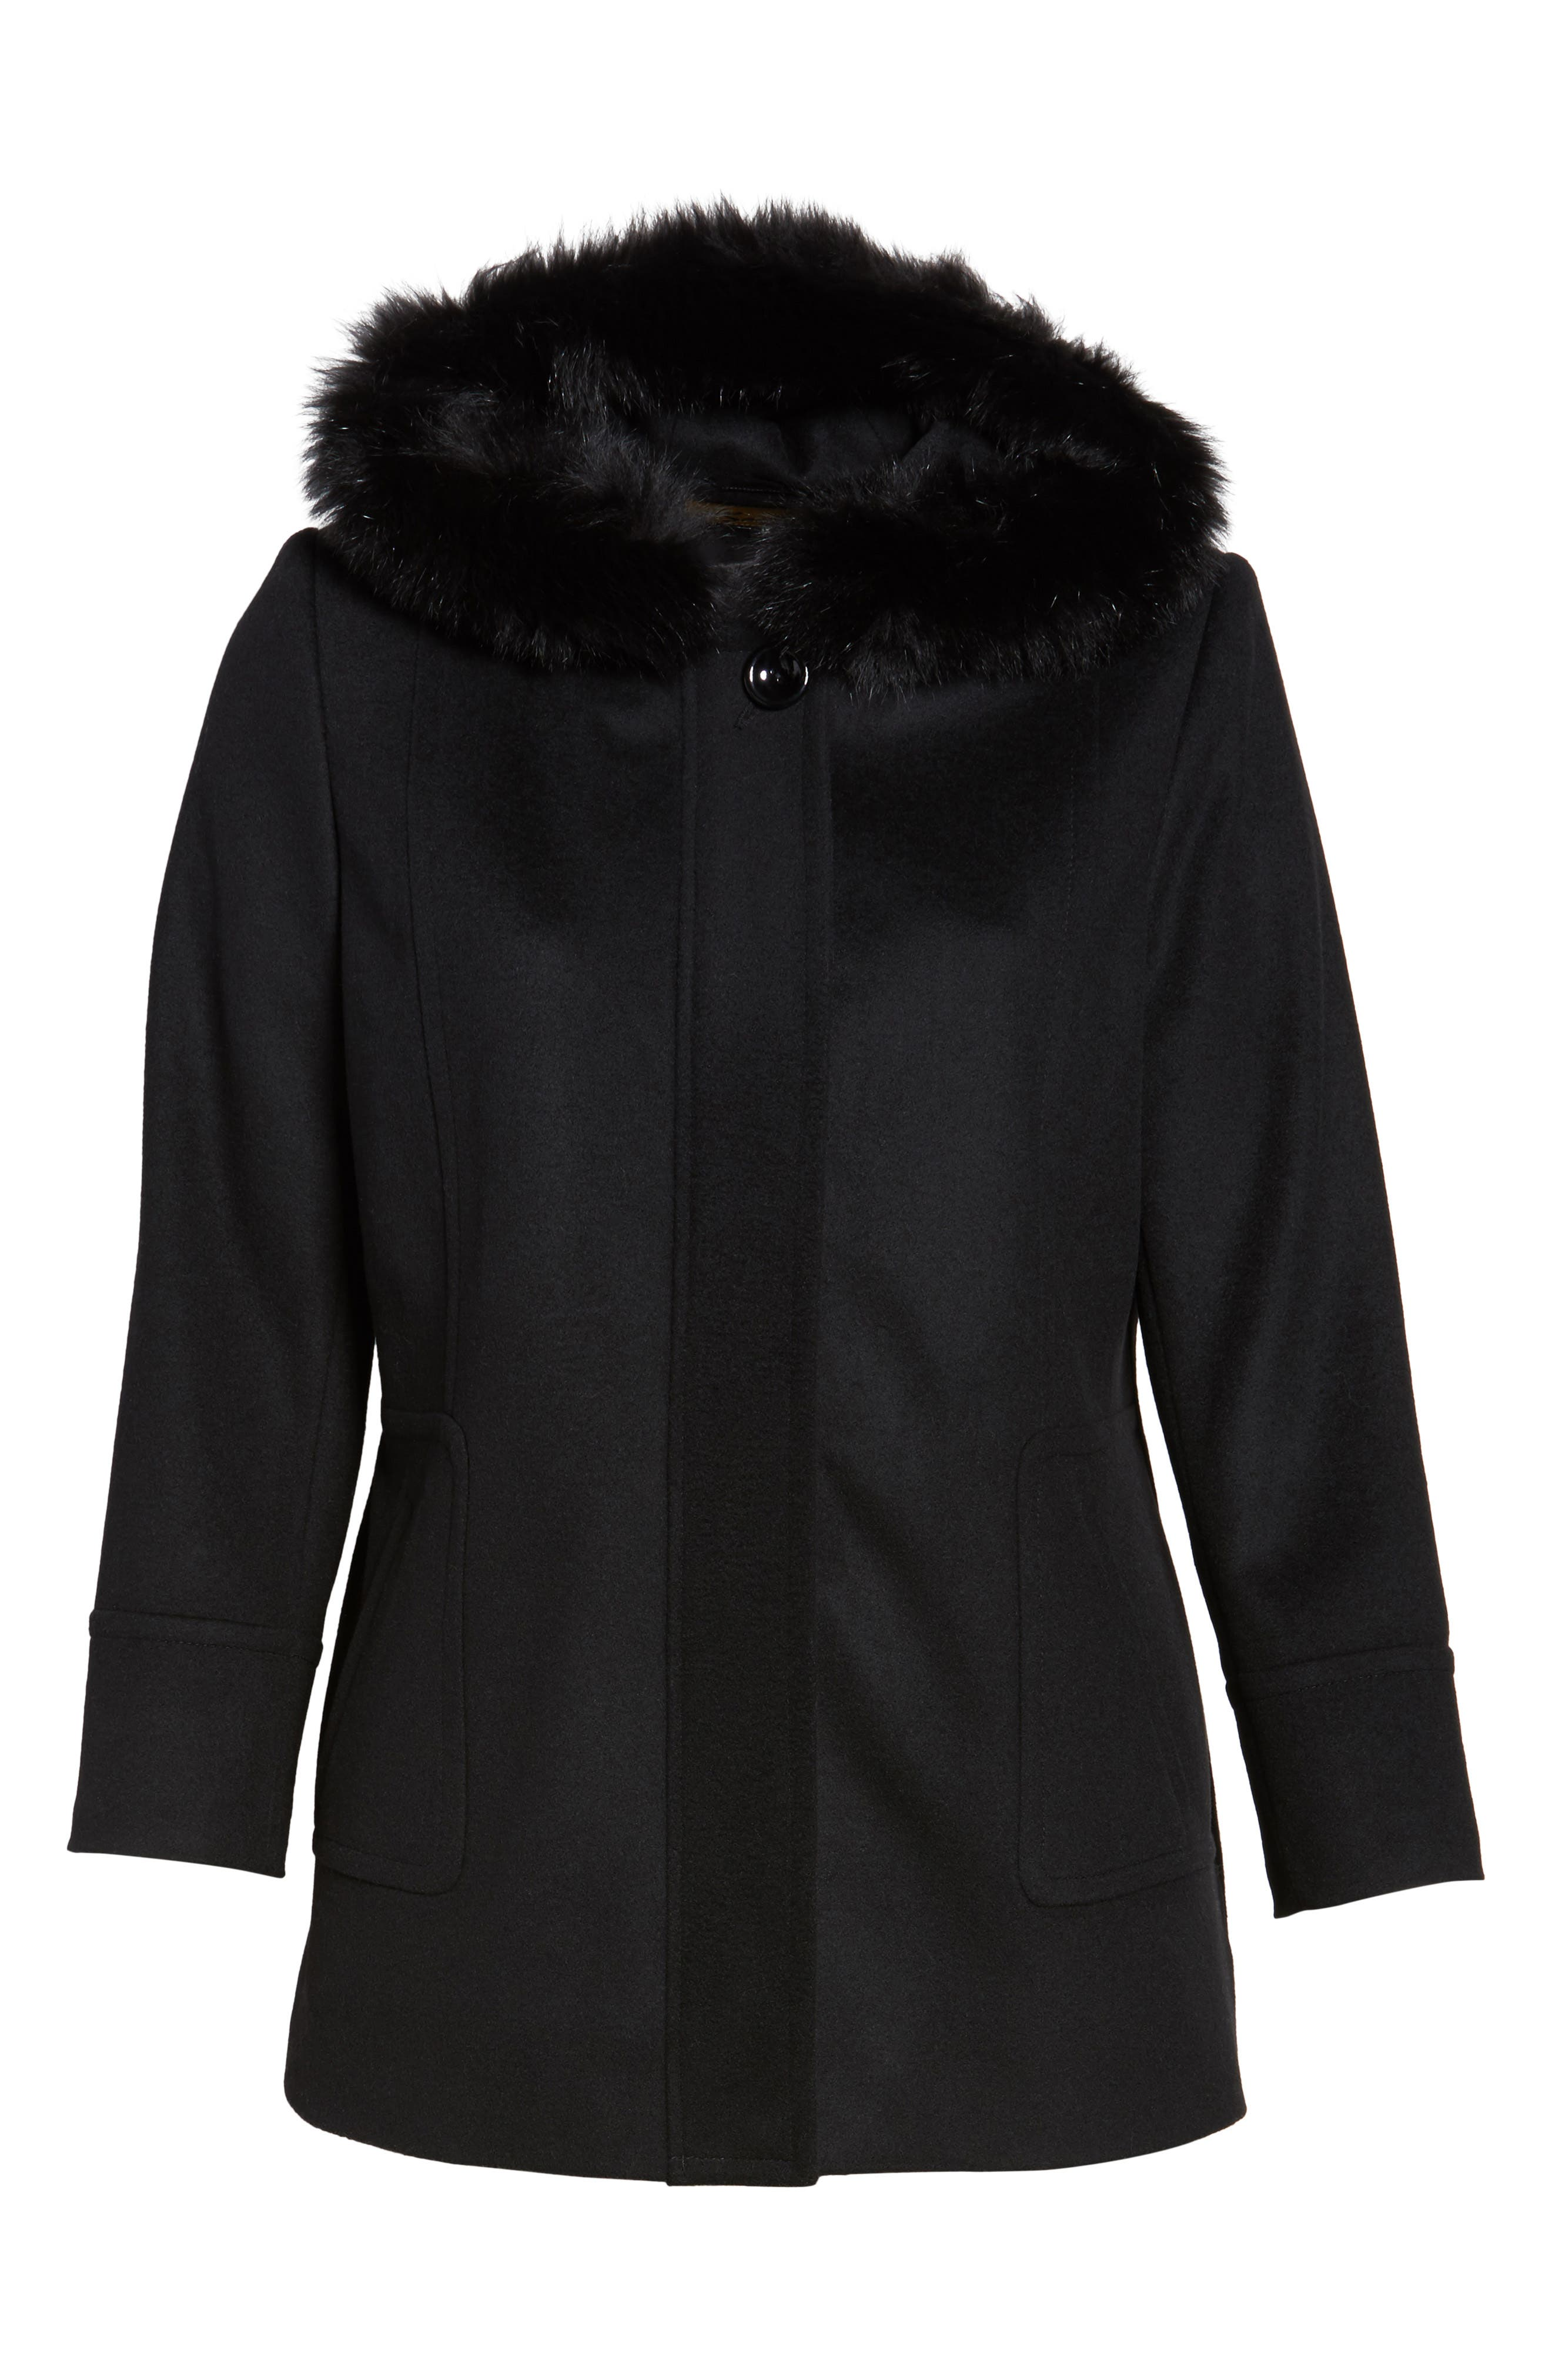 Hooded Wool Blend Coat with Genuine Fox Fur Trim,                             Alternate thumbnail 5, color,                             001